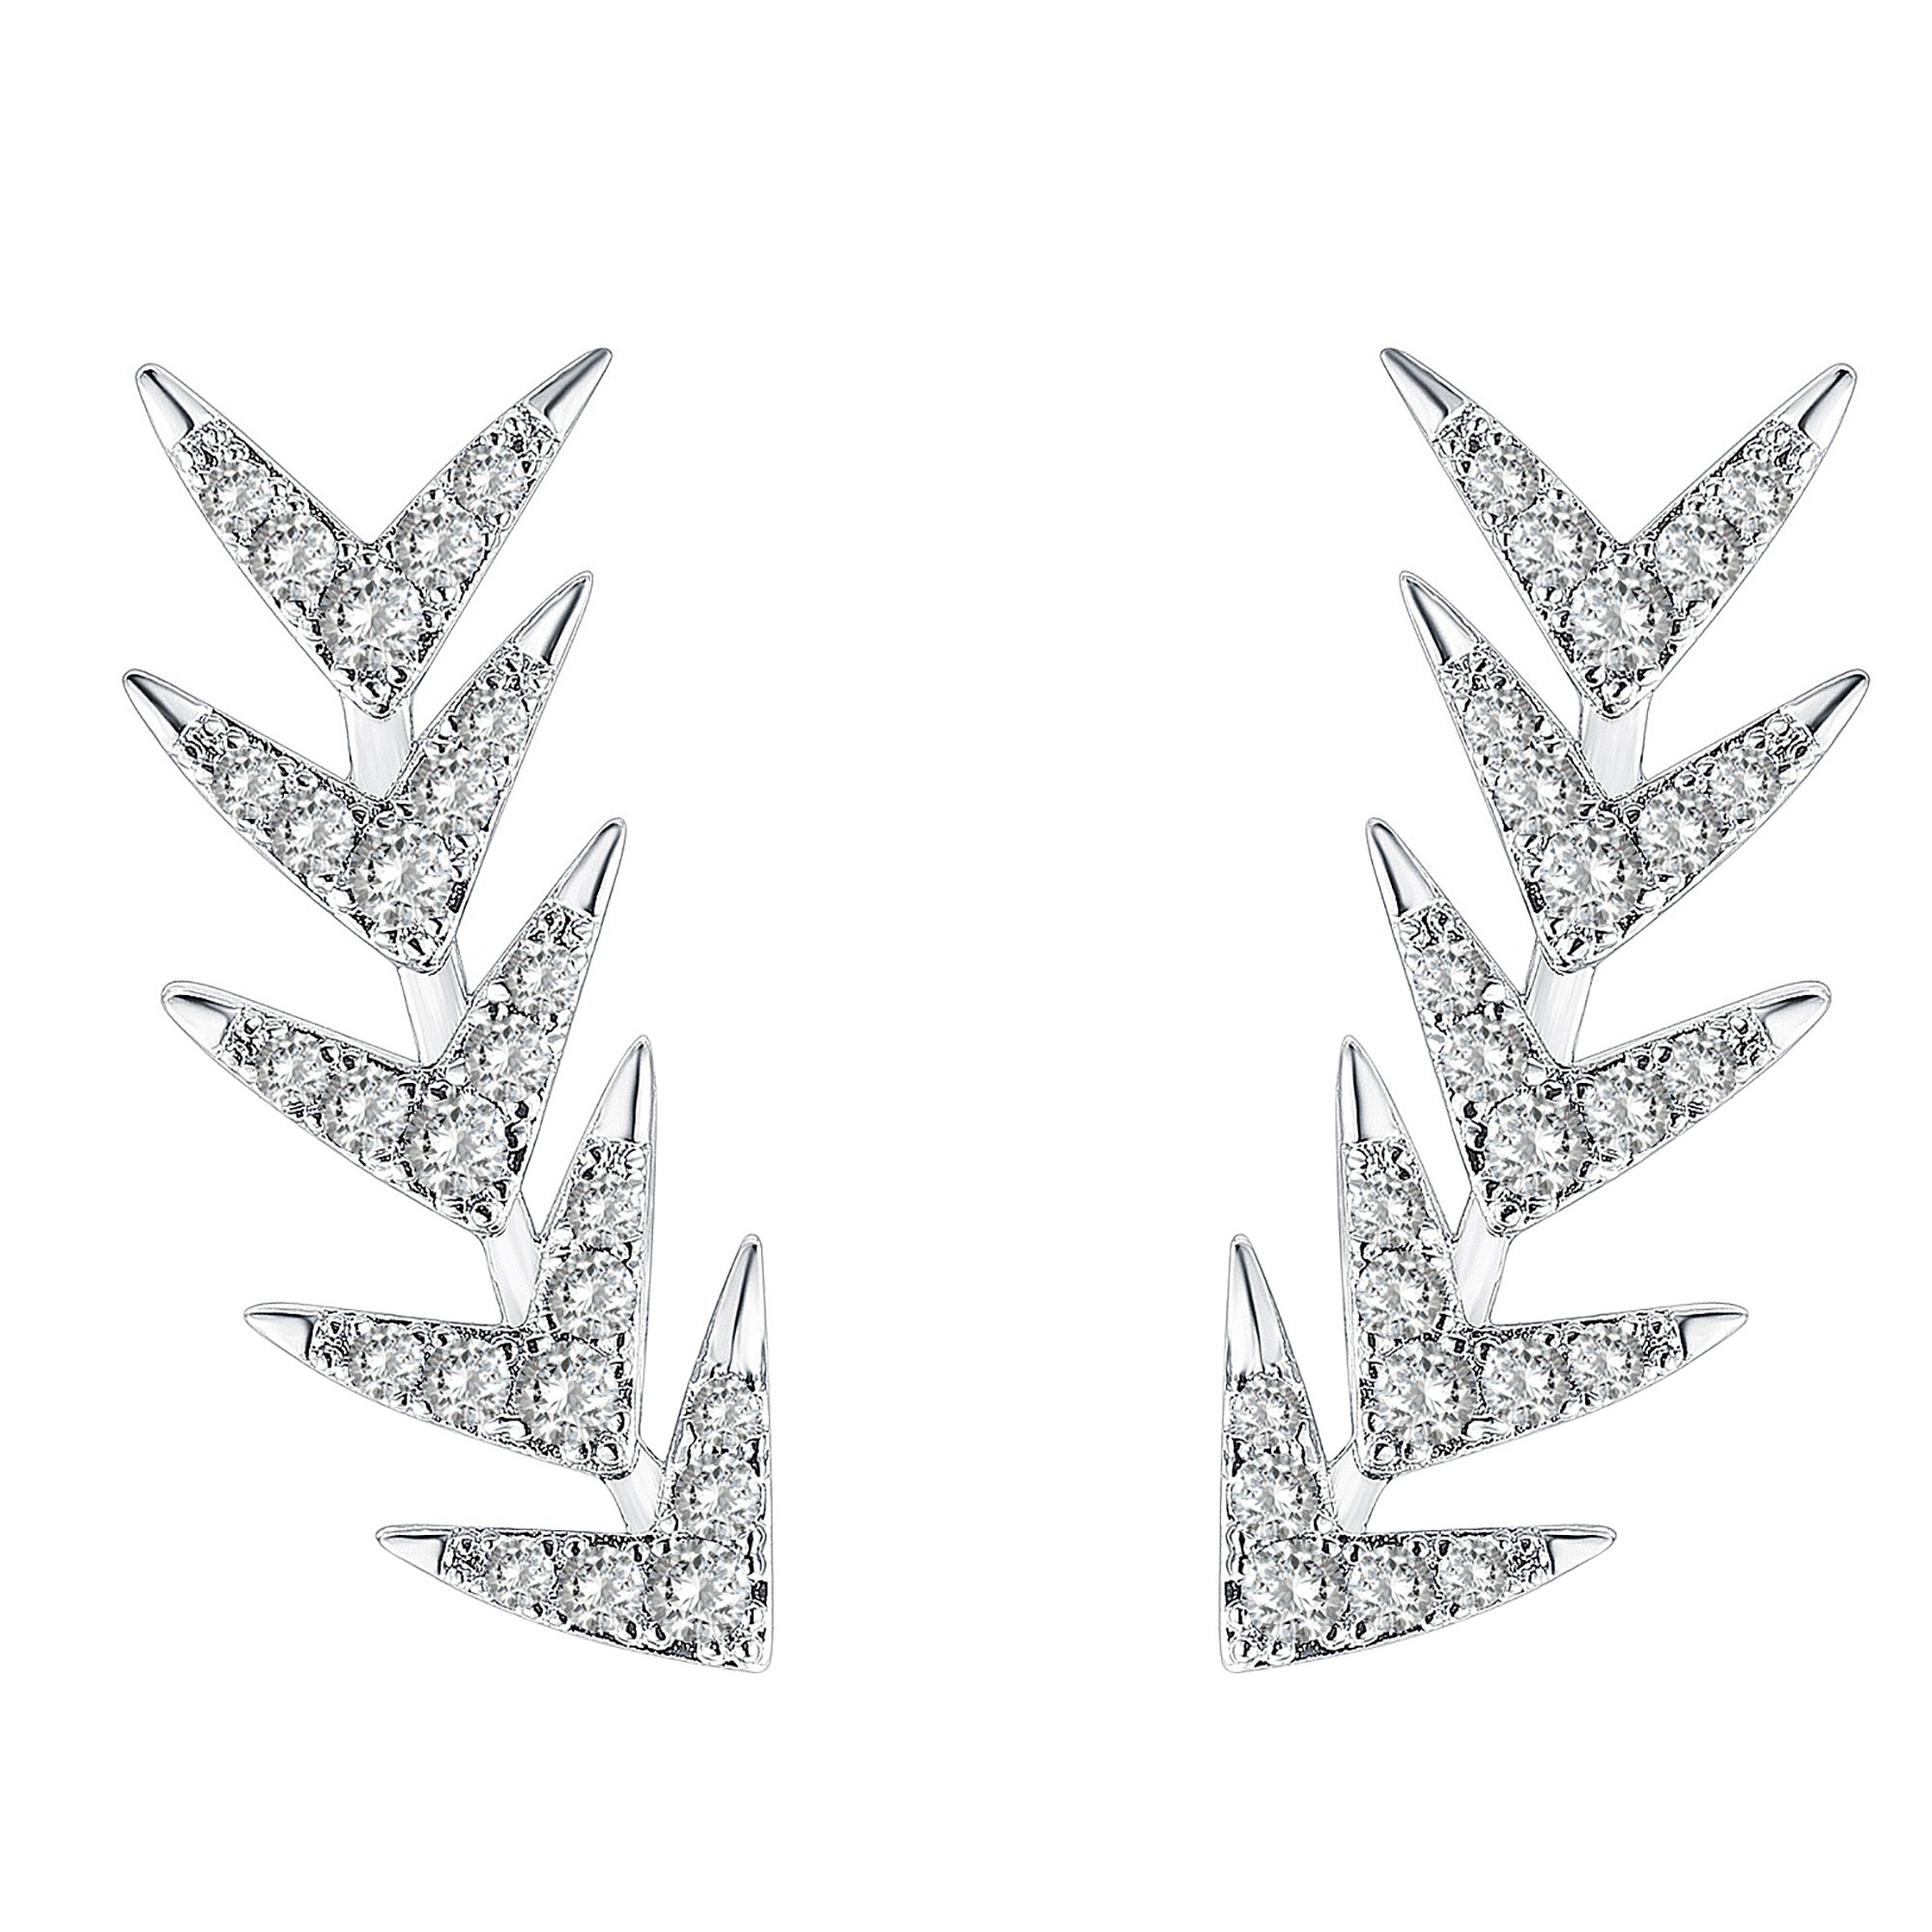 PAVOI Rhodium Plated Sterling Silver Post Climber Arrow Ear Crawler Earrings by PAVOI